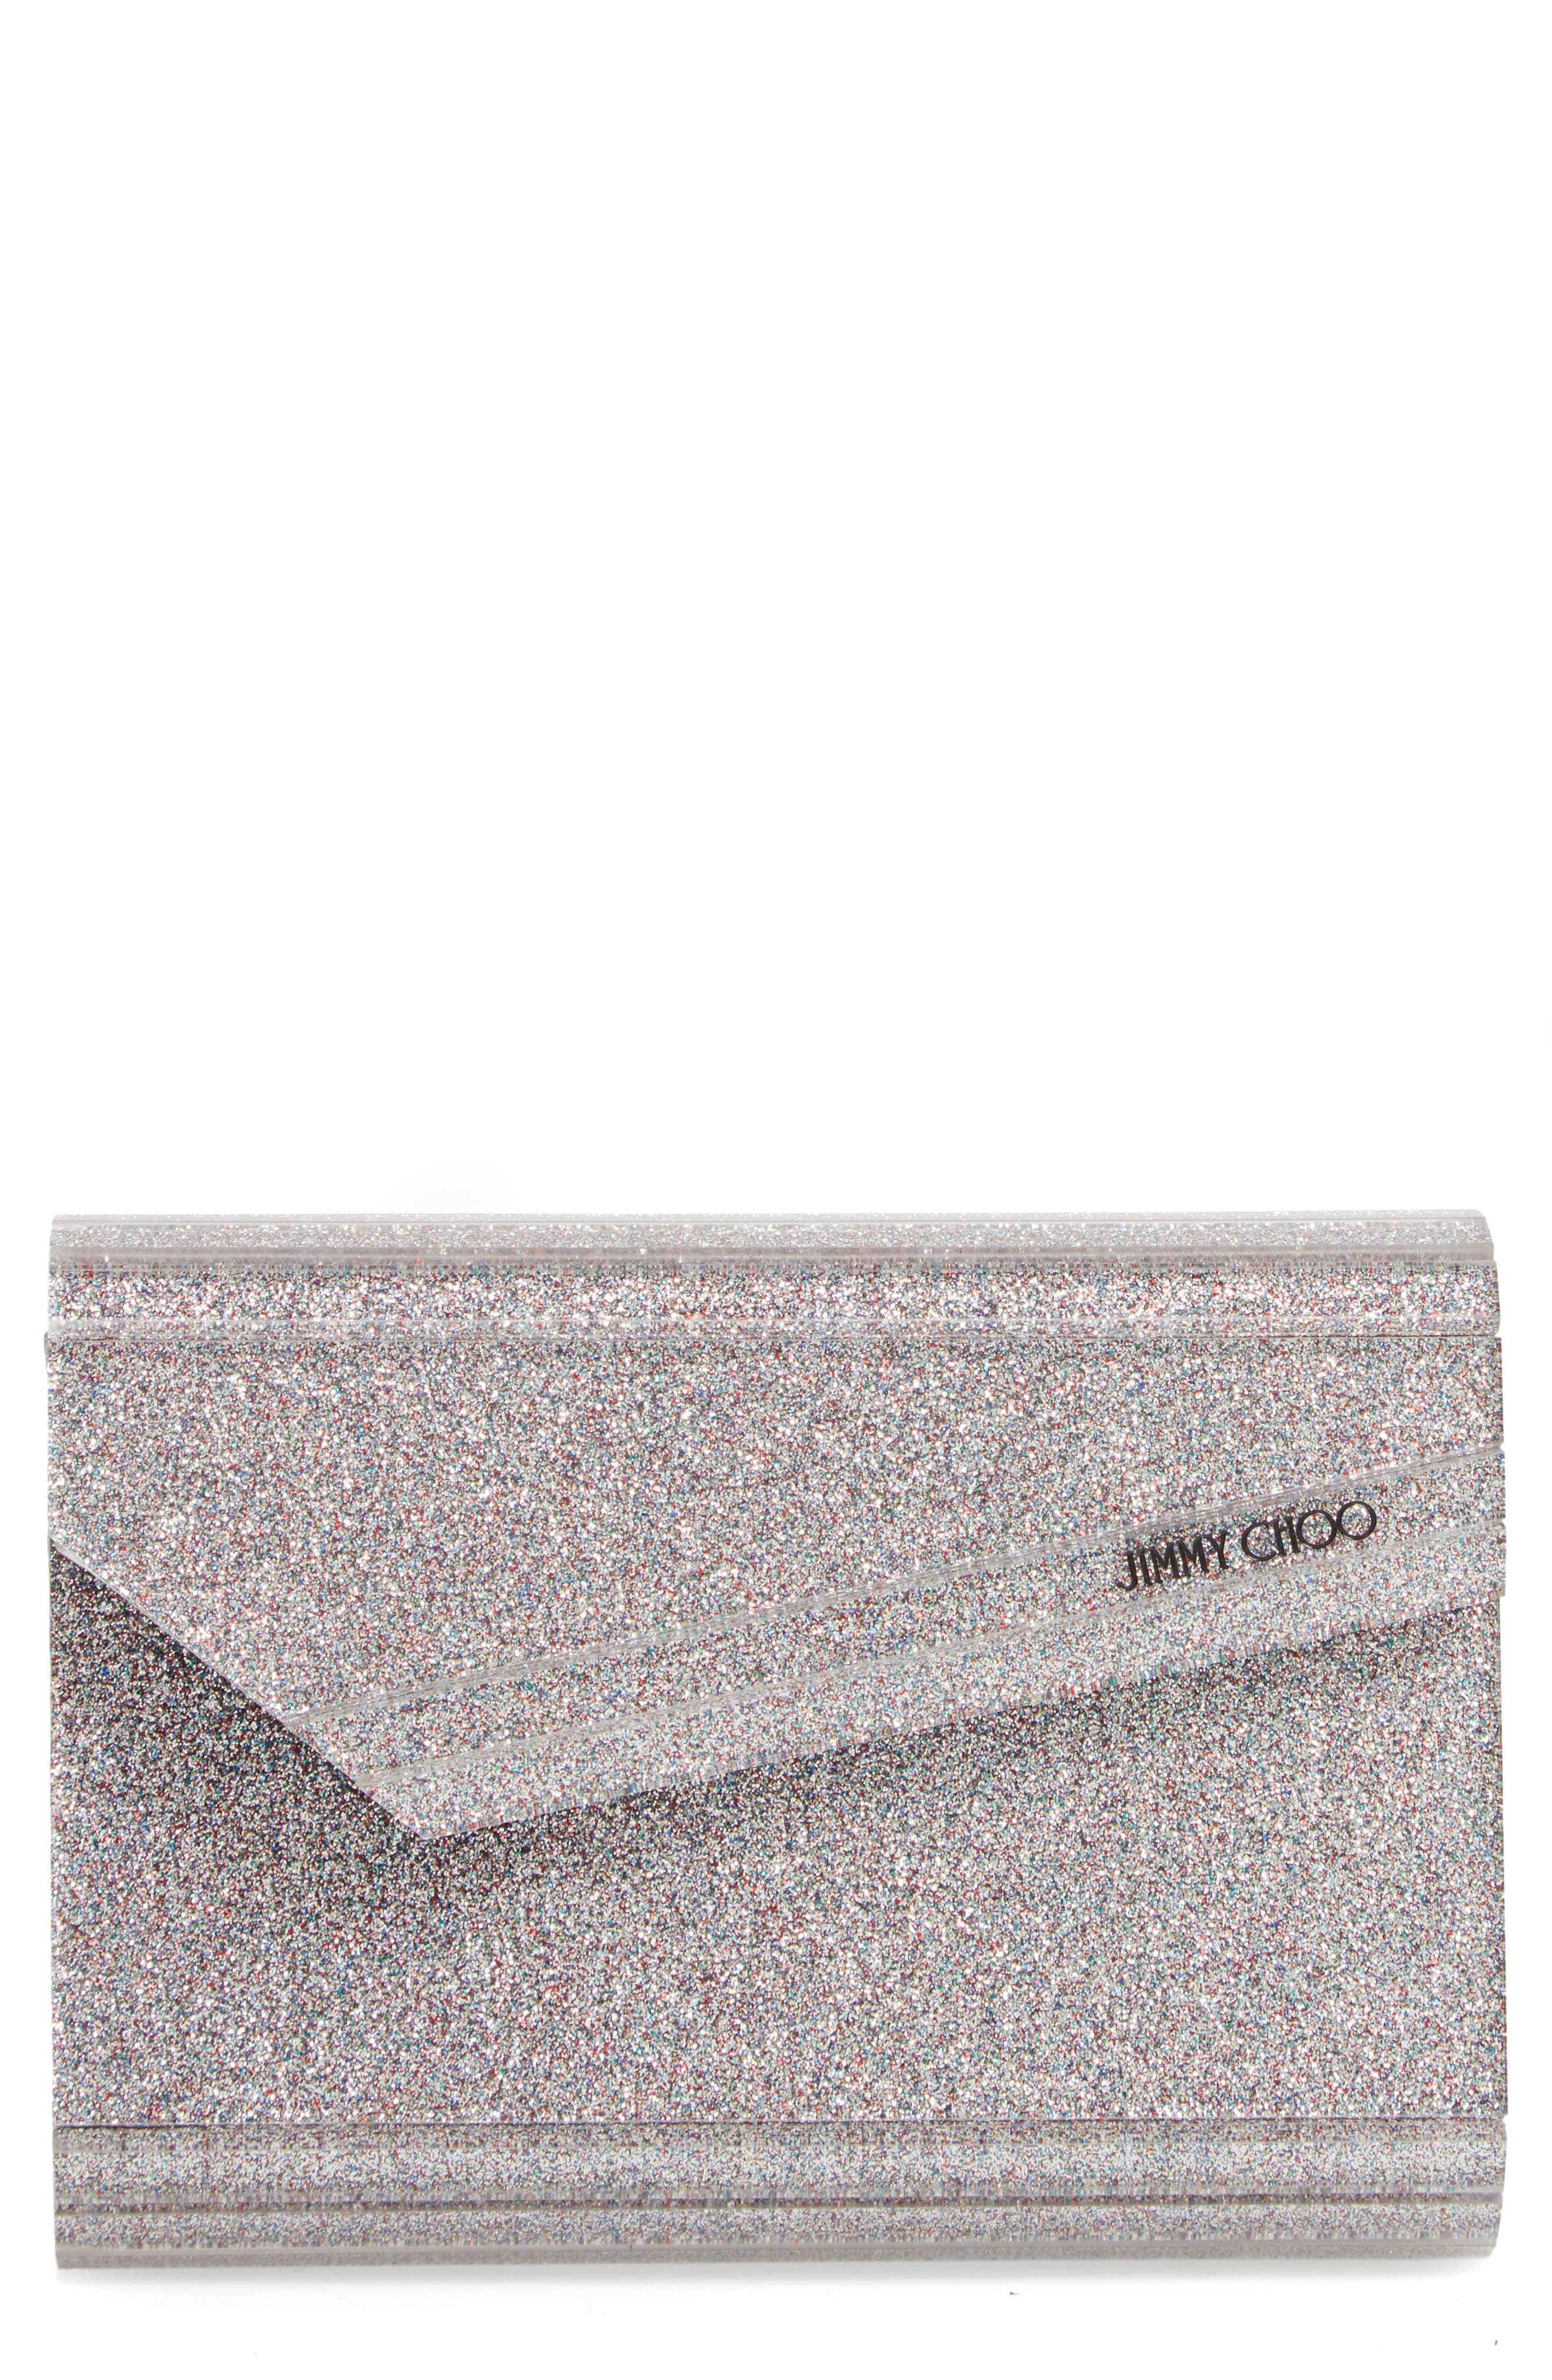 JIMMY CHOO Candy Glitter Clutch, Main, color, 040